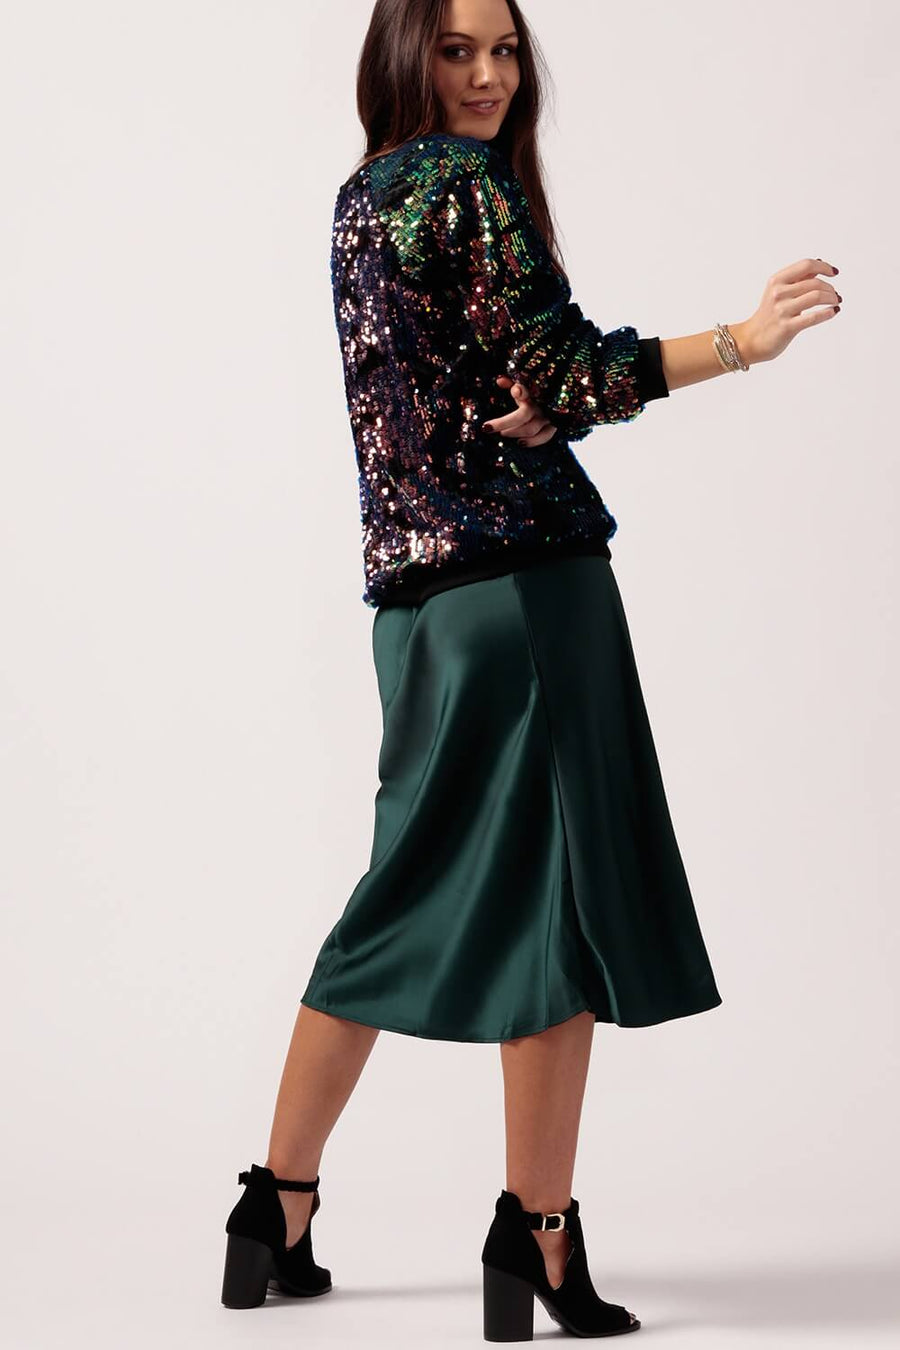 Women's Emerald Silk Skirt